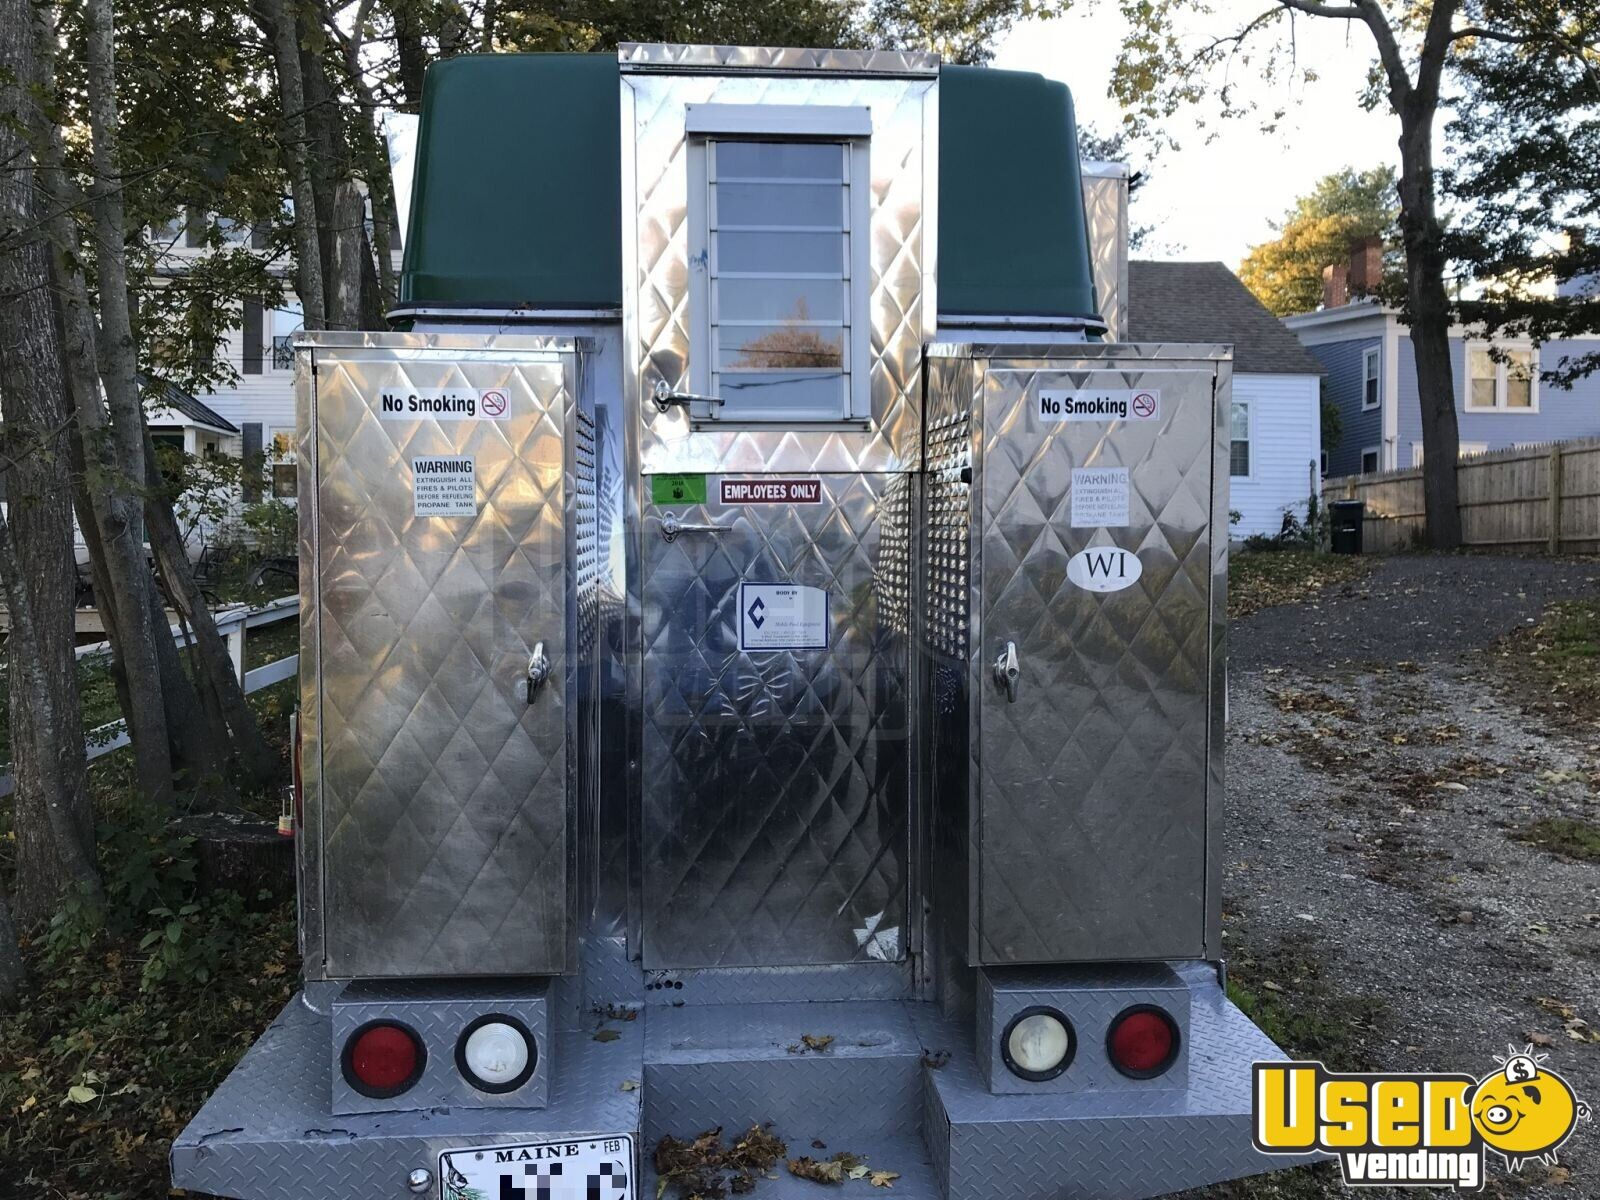 2004 Ford Ecovan All-purpose Food Truck Spare Tire Rhode Island Gas Engine for Sale - 4